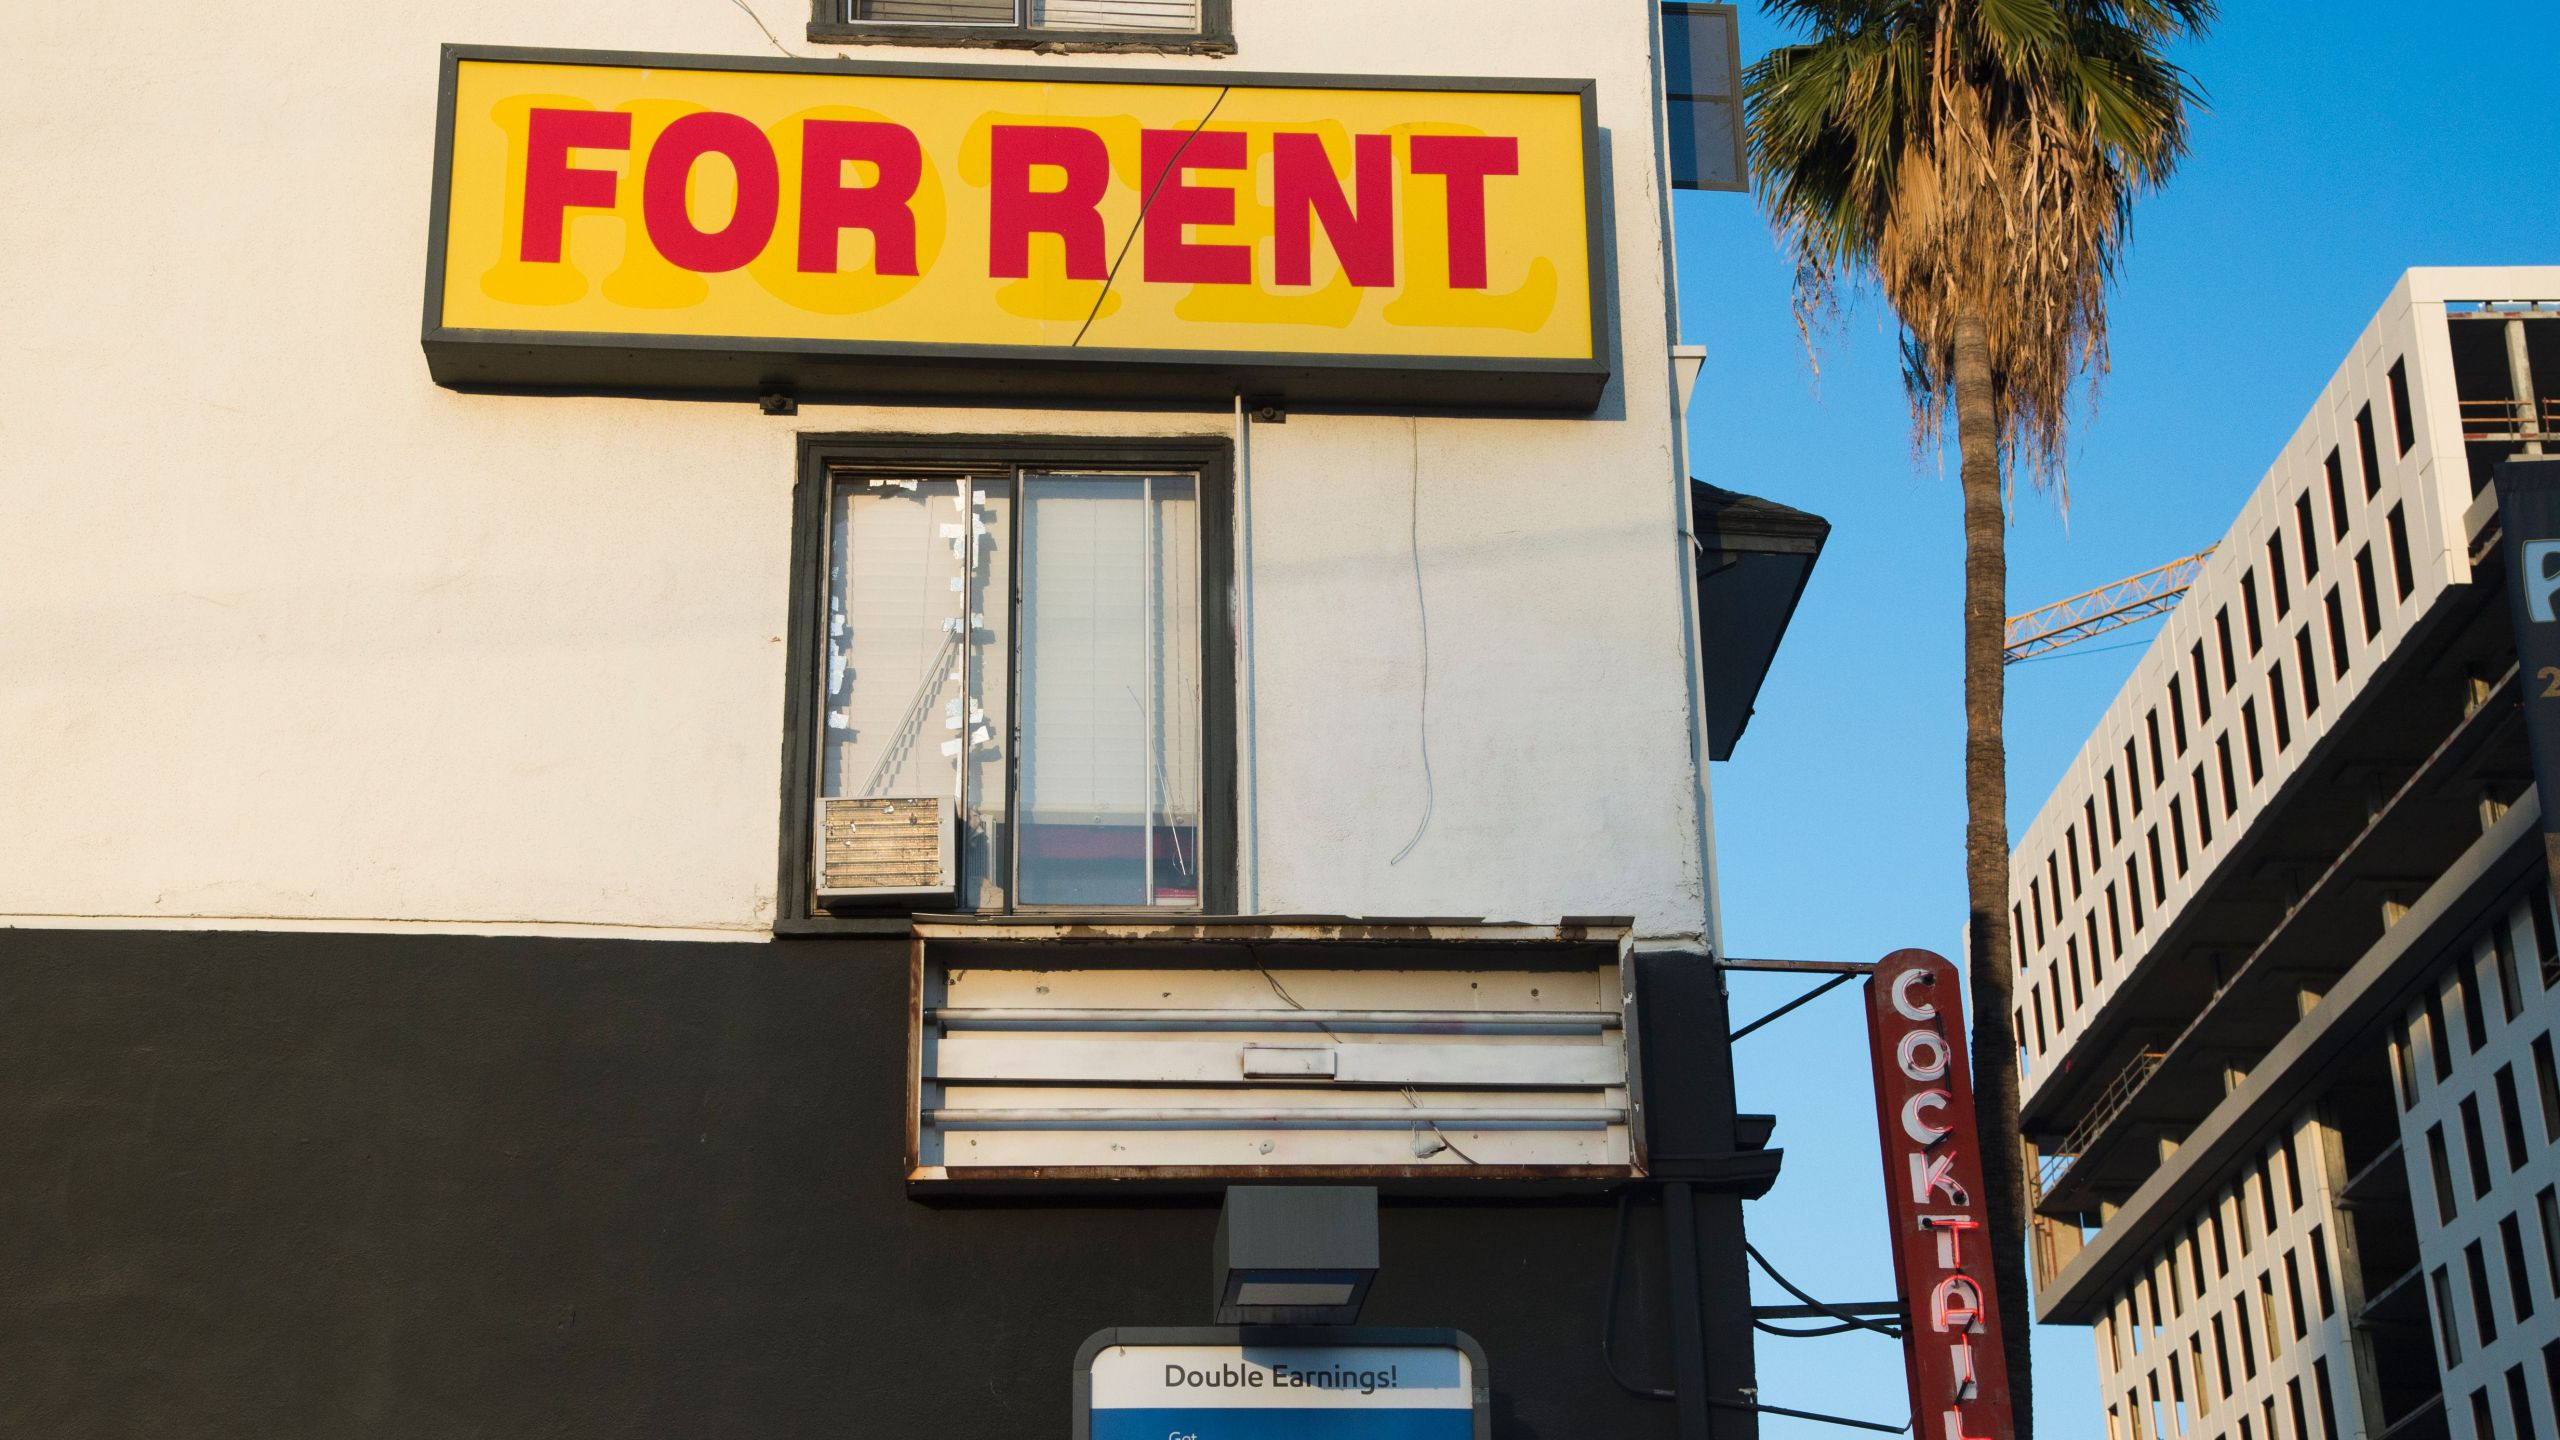 """A """"For Rent"""" sign is seen on a building Hollywood, California, May 11, 2016.(ROBYN BECK/AFP via Getty Images)"""